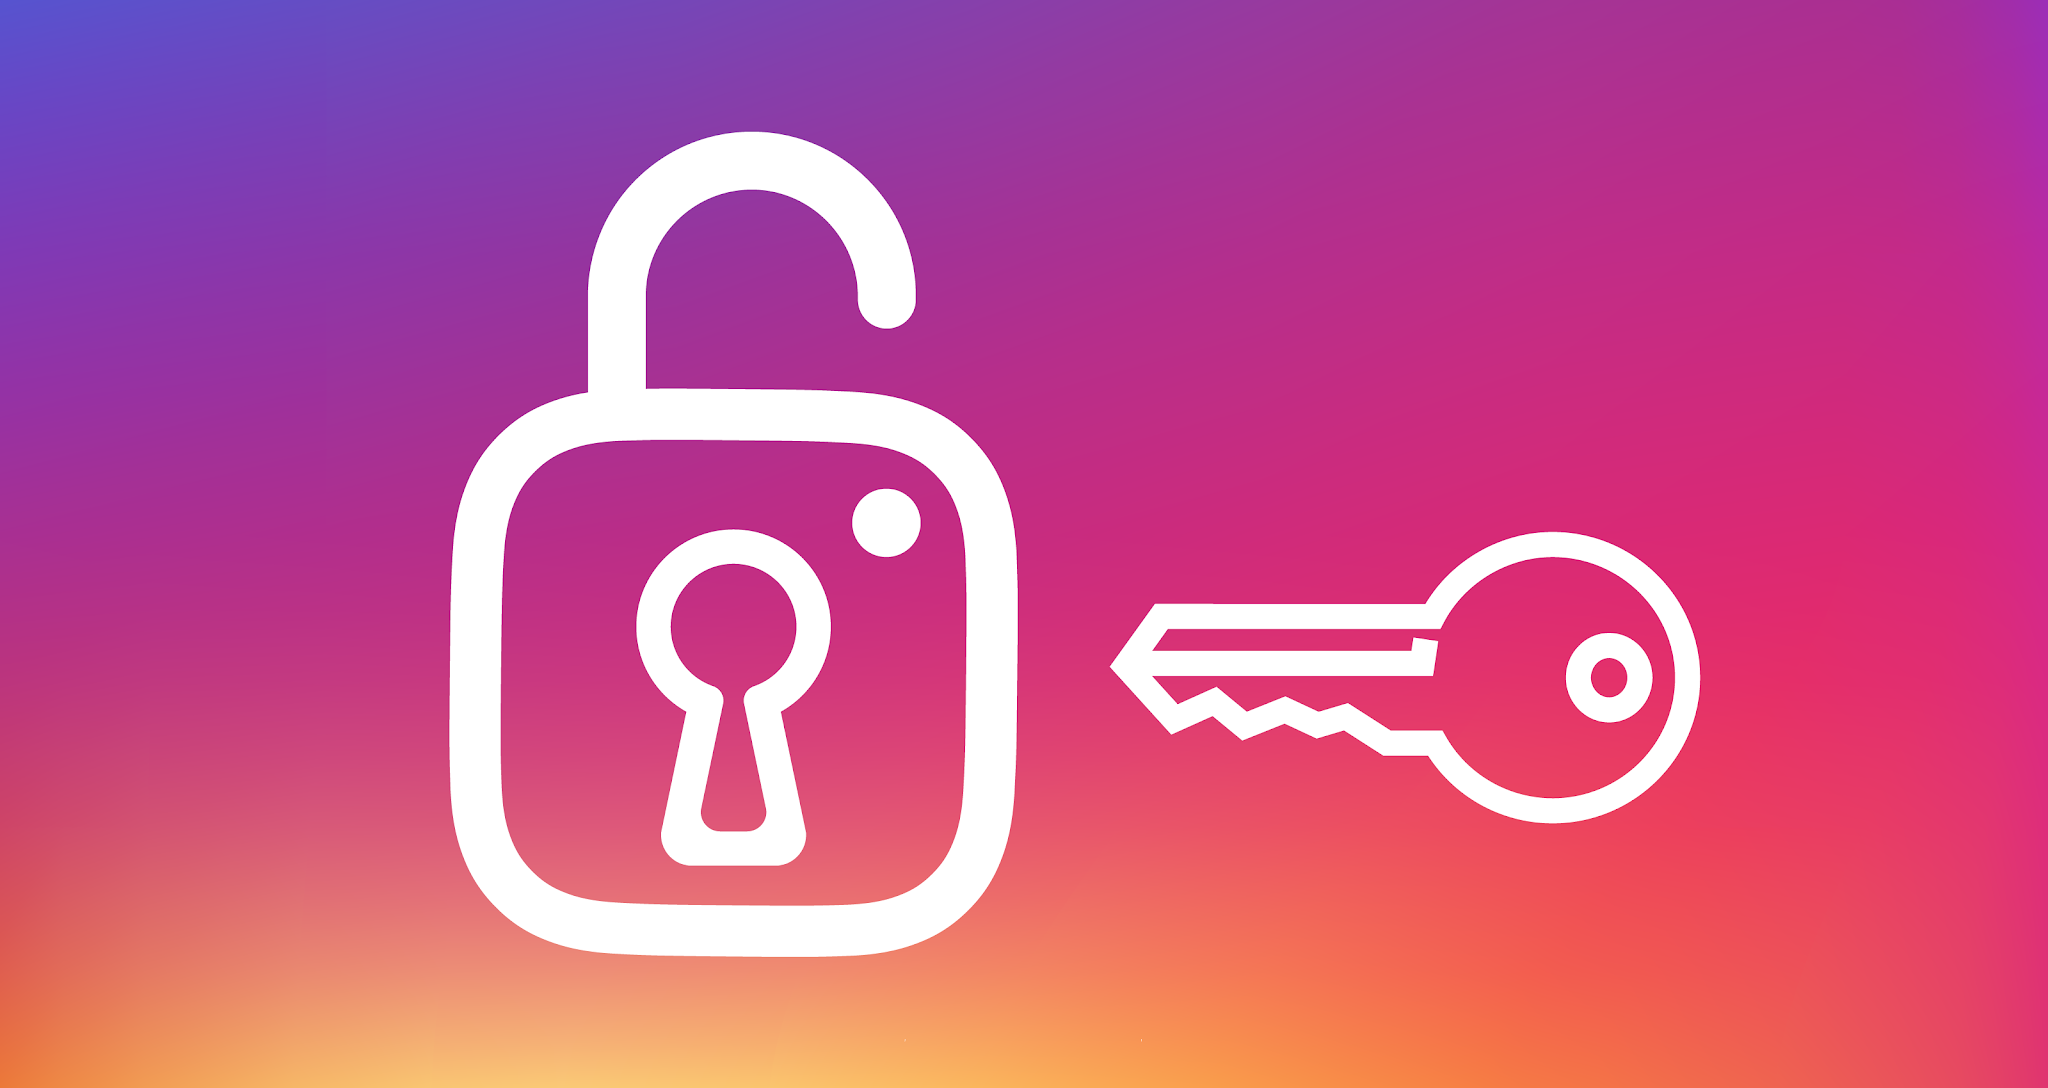 5 Easy Ways to Collect Email Addresses on Instagram